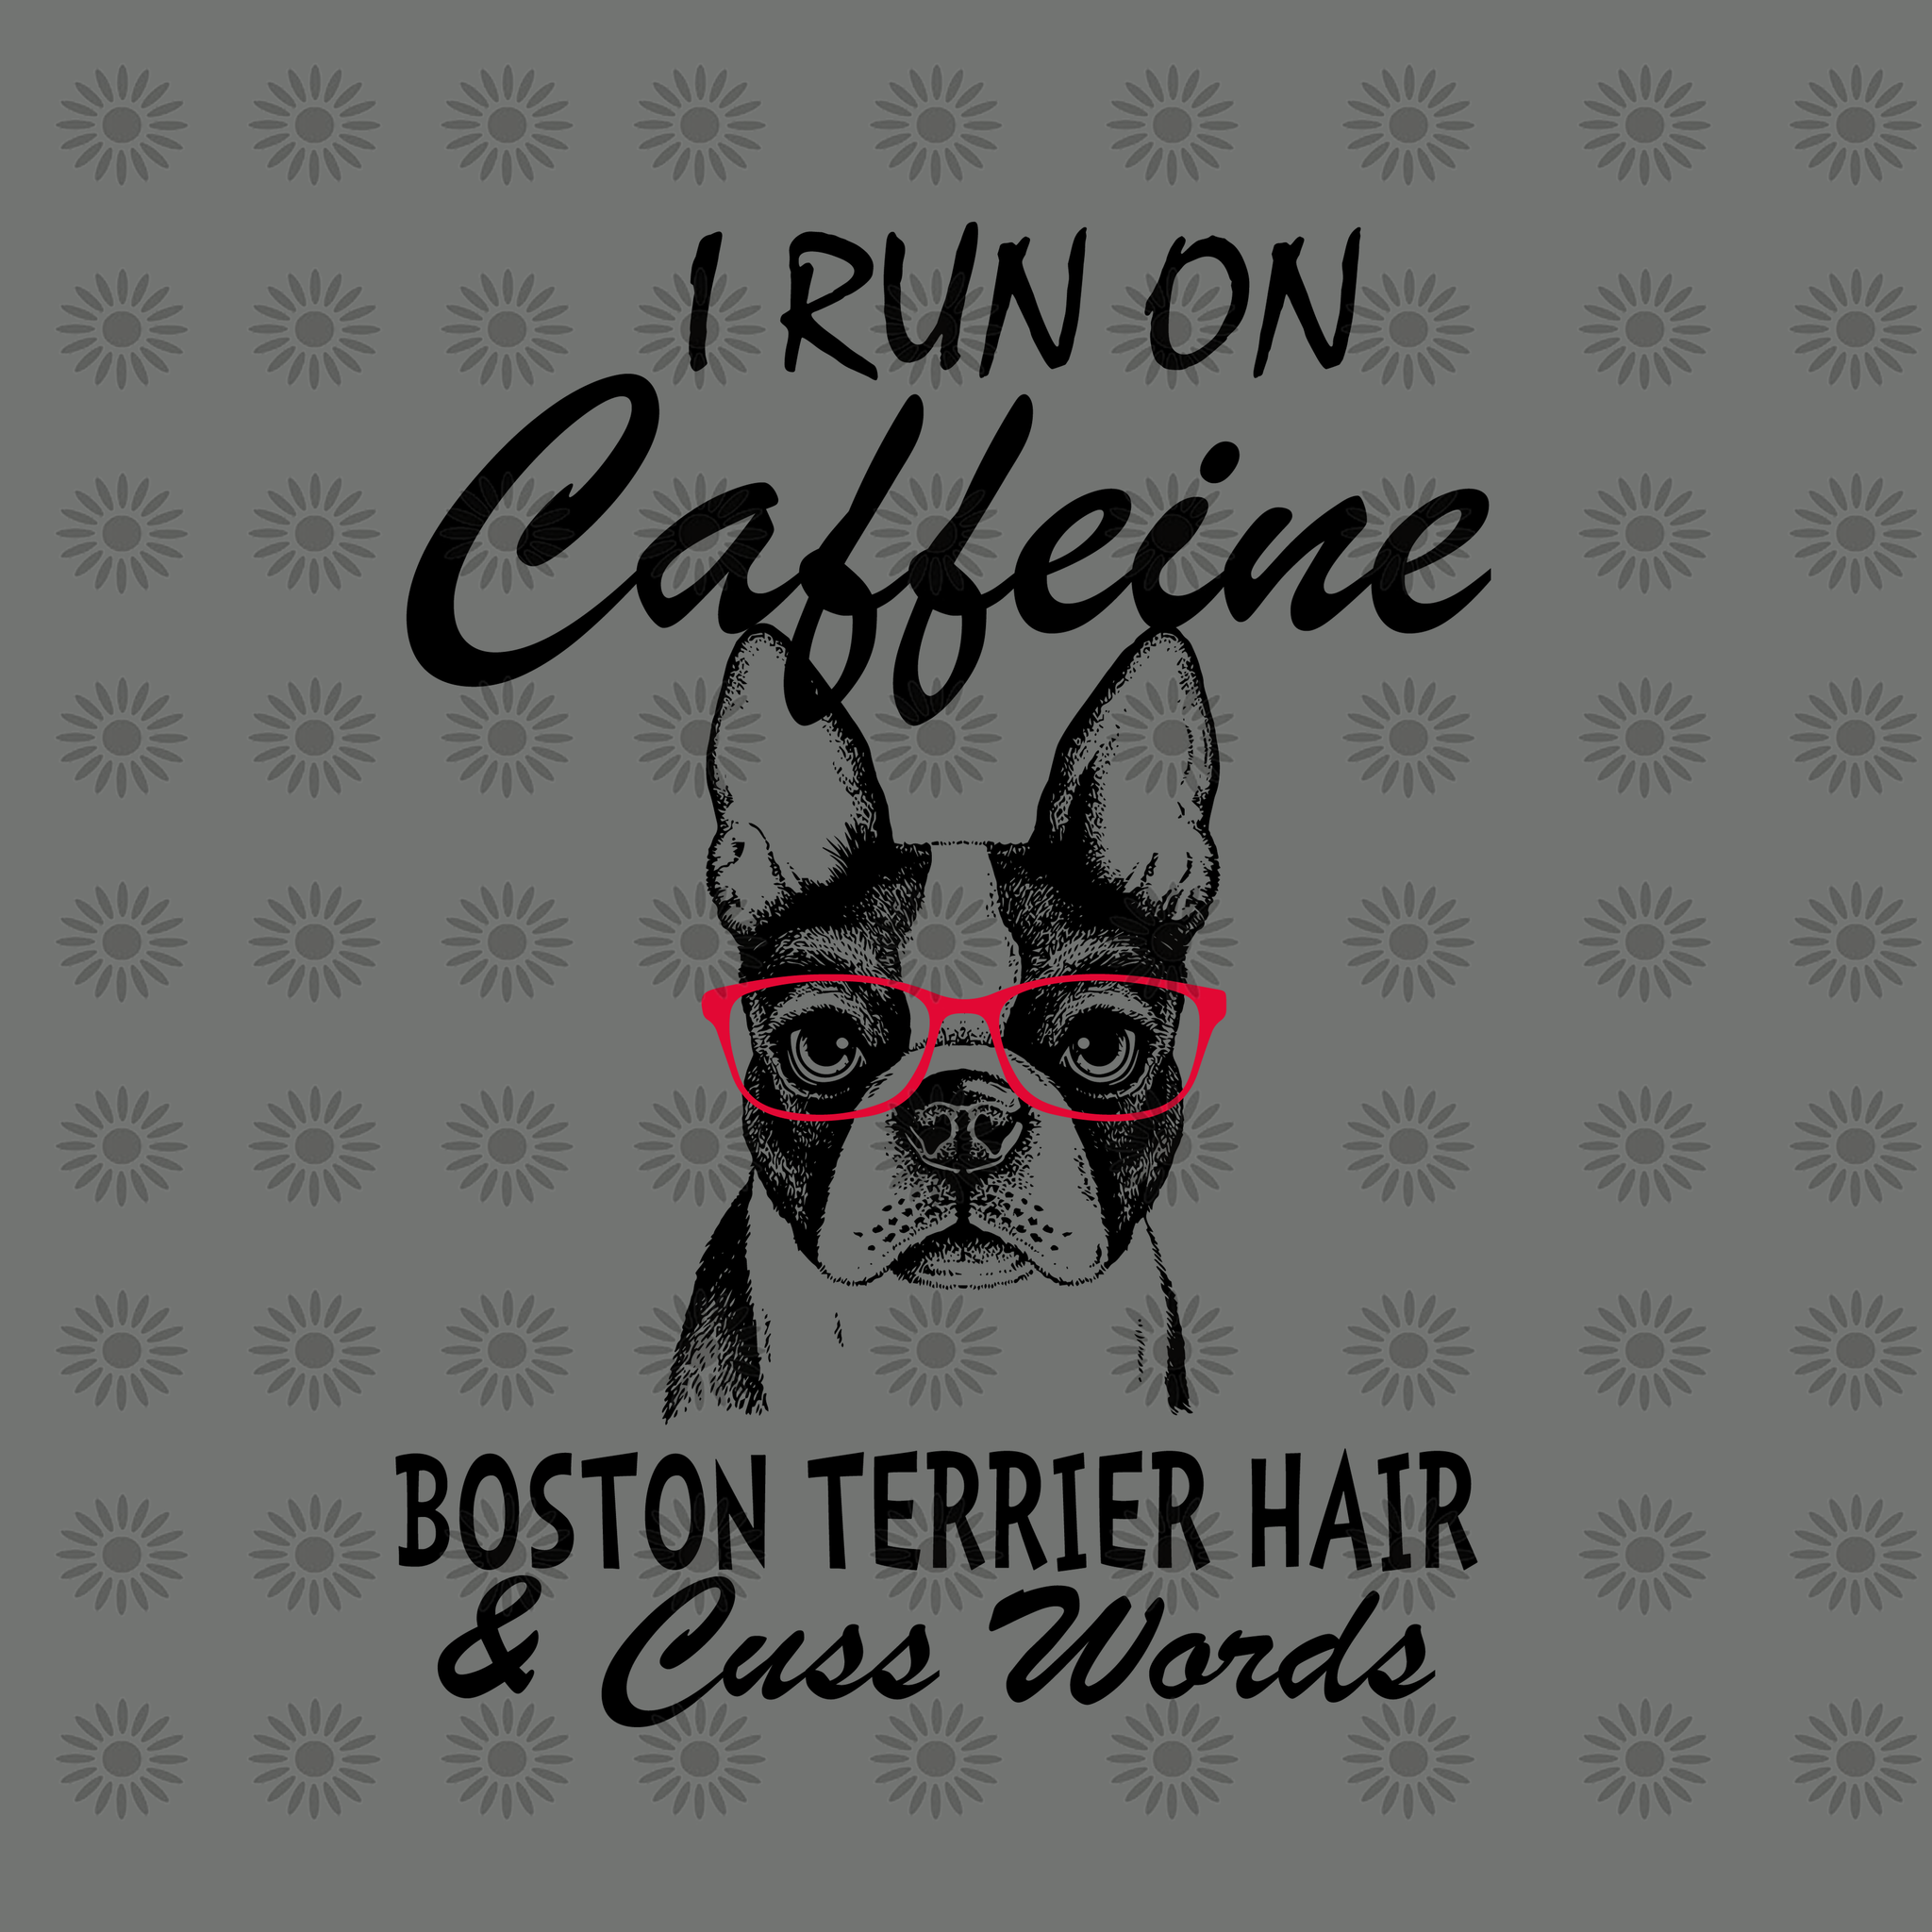 I Run On Caffeine boston terrier hair & cuss words svg, I Run On Caffeine boston terrier & cuss words, boston terrier svg, dog svg, eps, dxf, png file